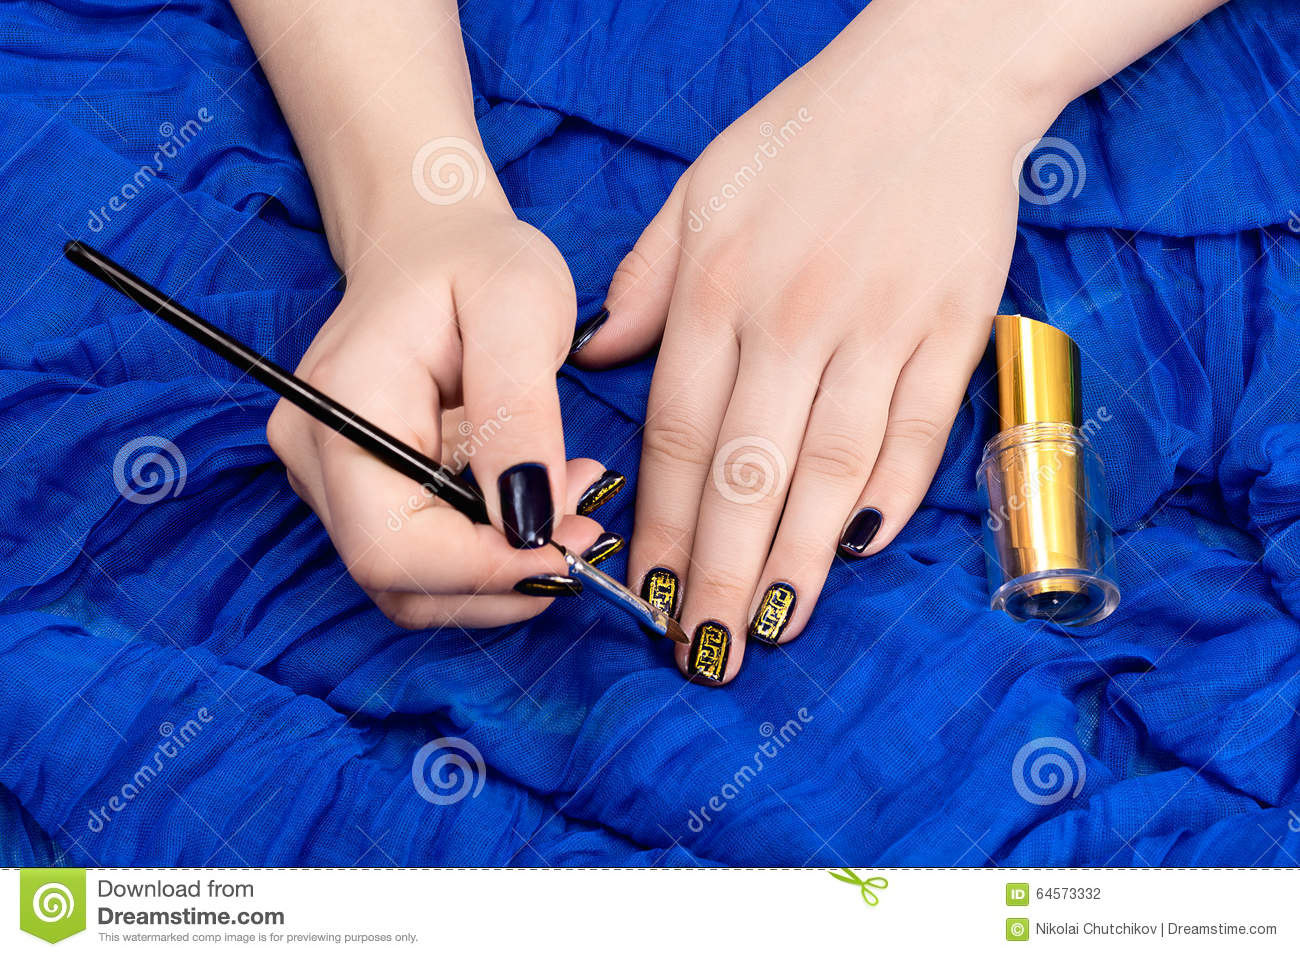 Painting Fingers With Dark Blue Nails Stock Photo - Image of beauty ...